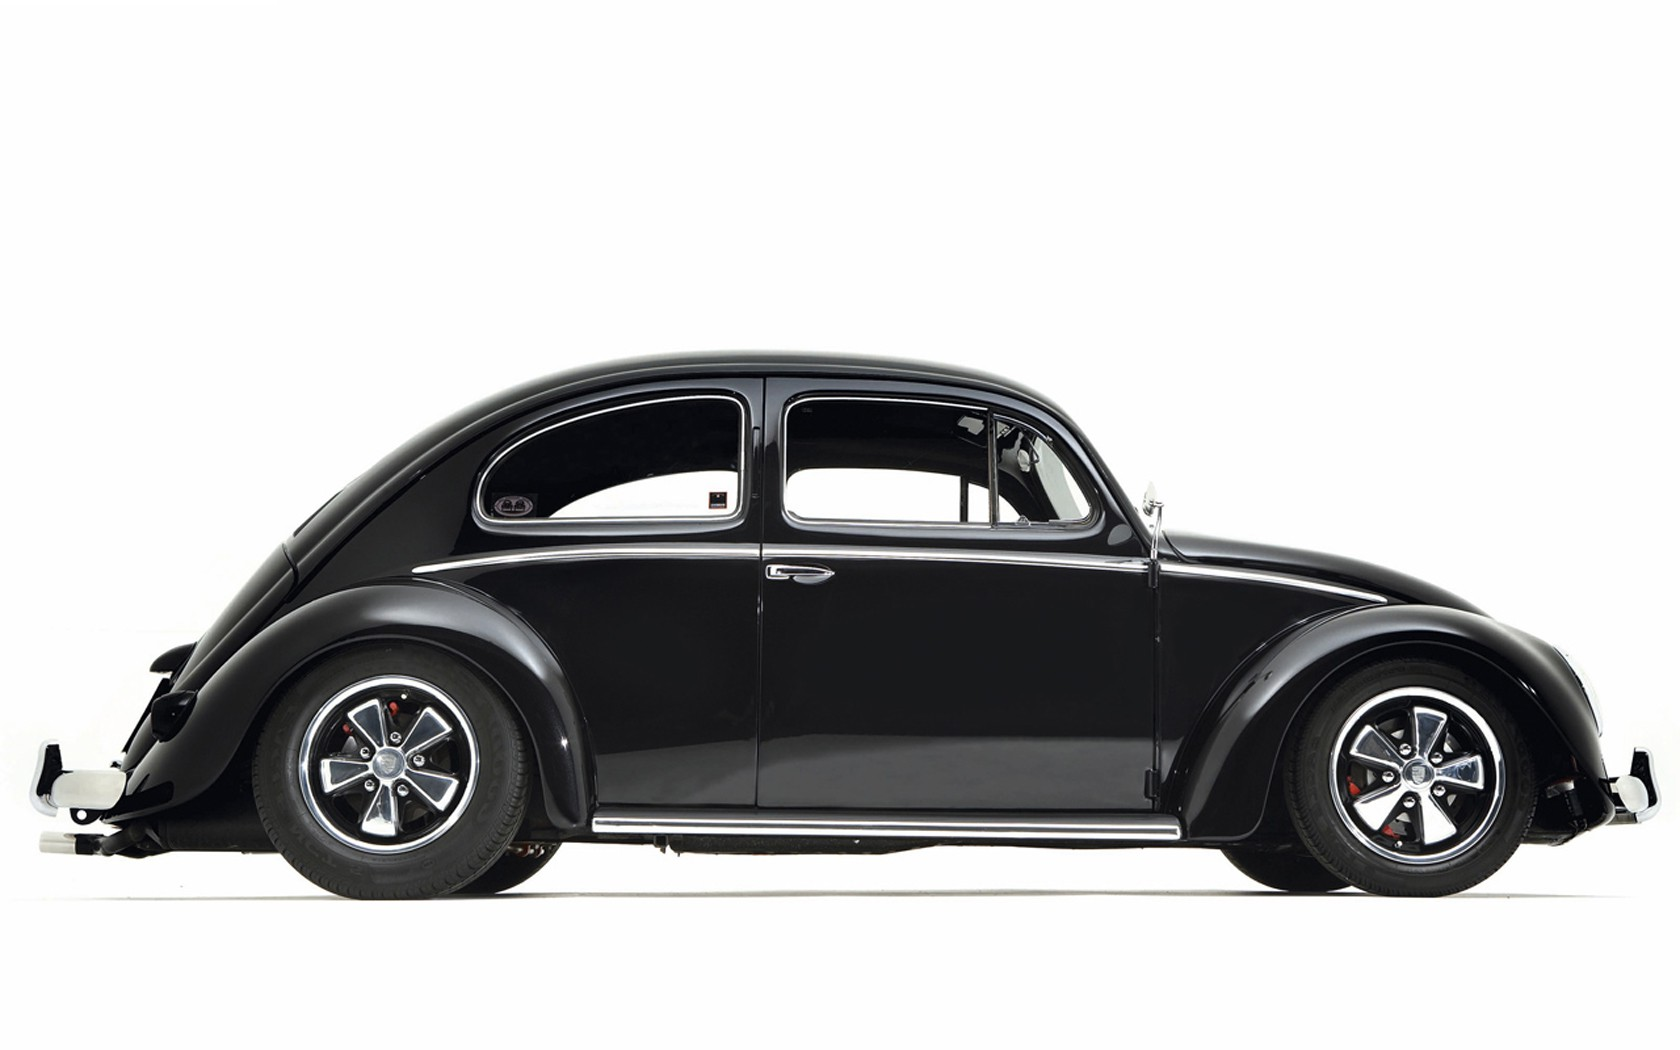 3840x1080 Wallpaper Classic Car Vehicle Car Vintage White Background Wheels Wallpapers